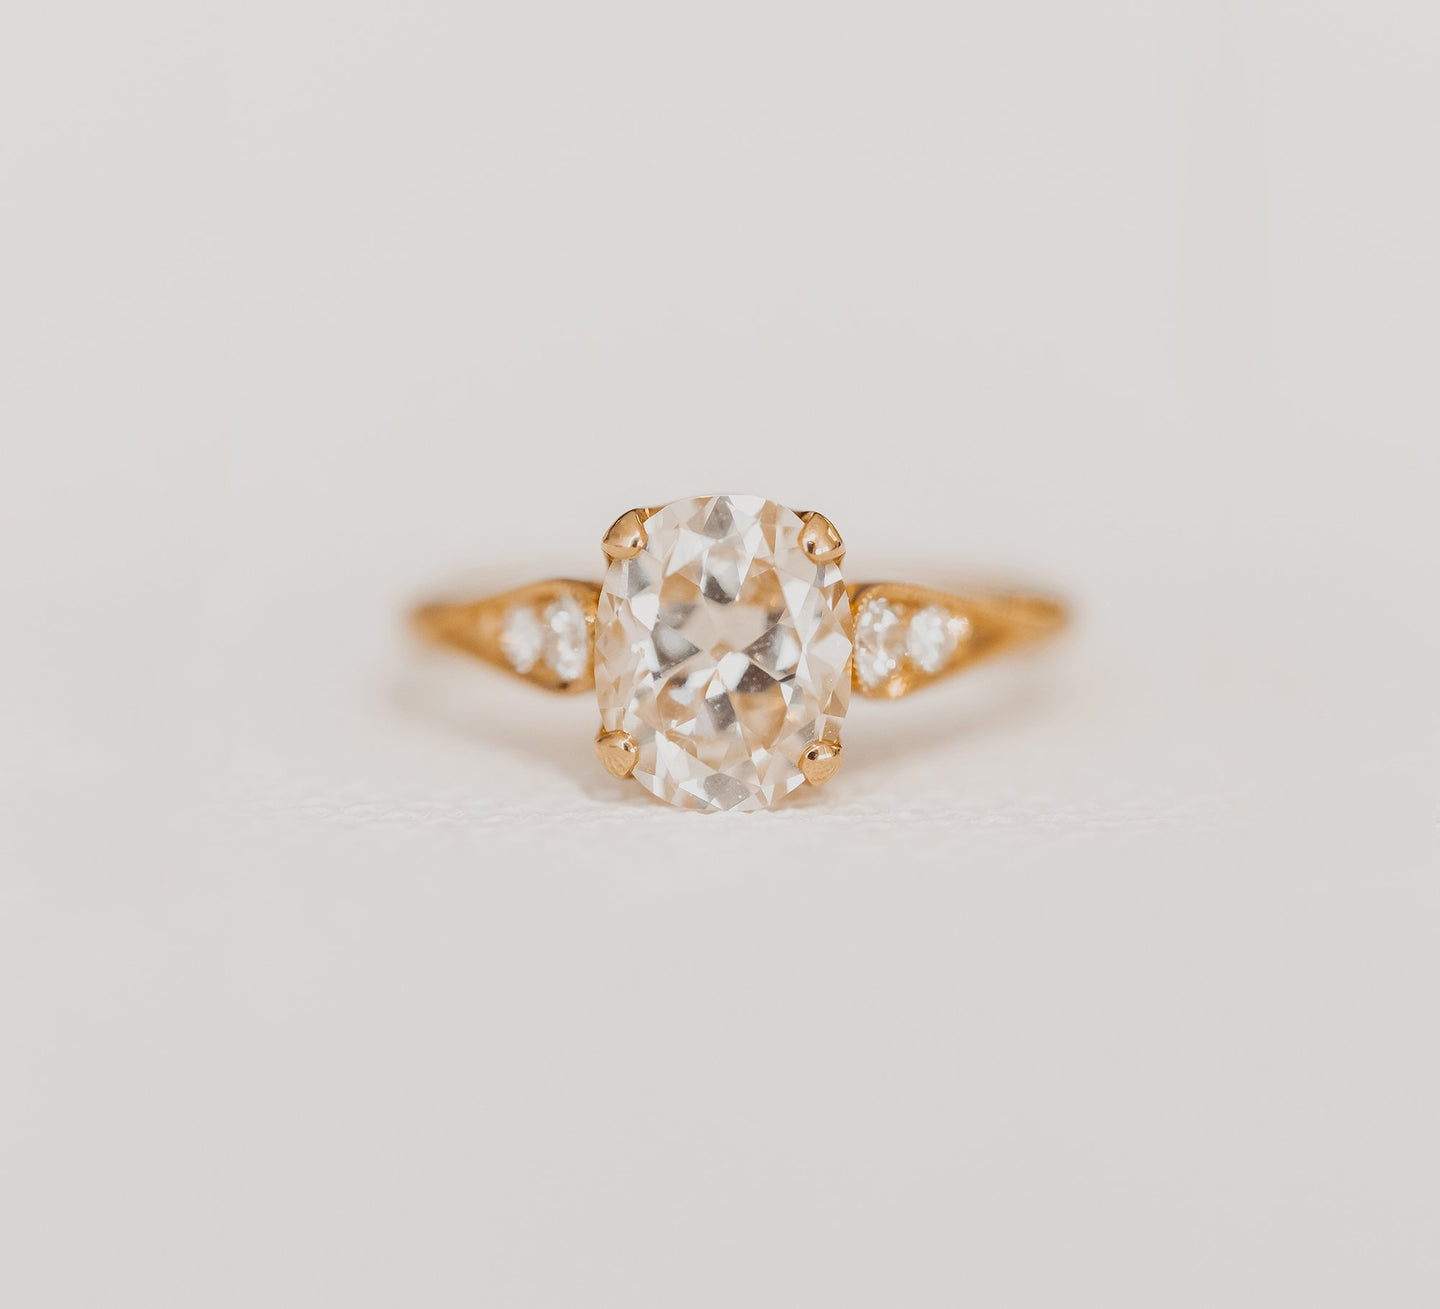 Antique + Vintage Engagement Rings